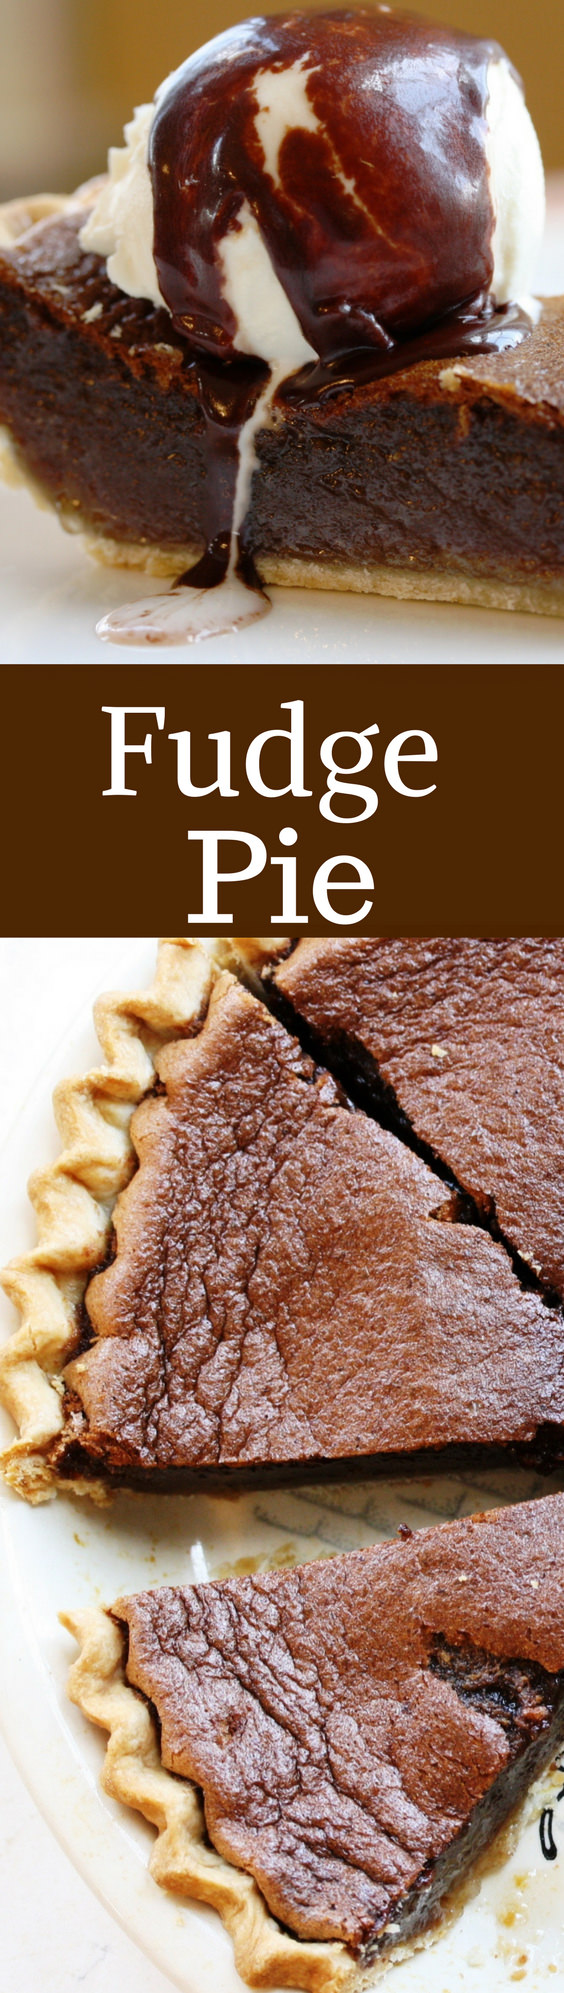 This amazing Fudge pie has a wonderful texture and light chocolate flavor with a filling similar to pecan pie without the pecans. Check out the recipe!